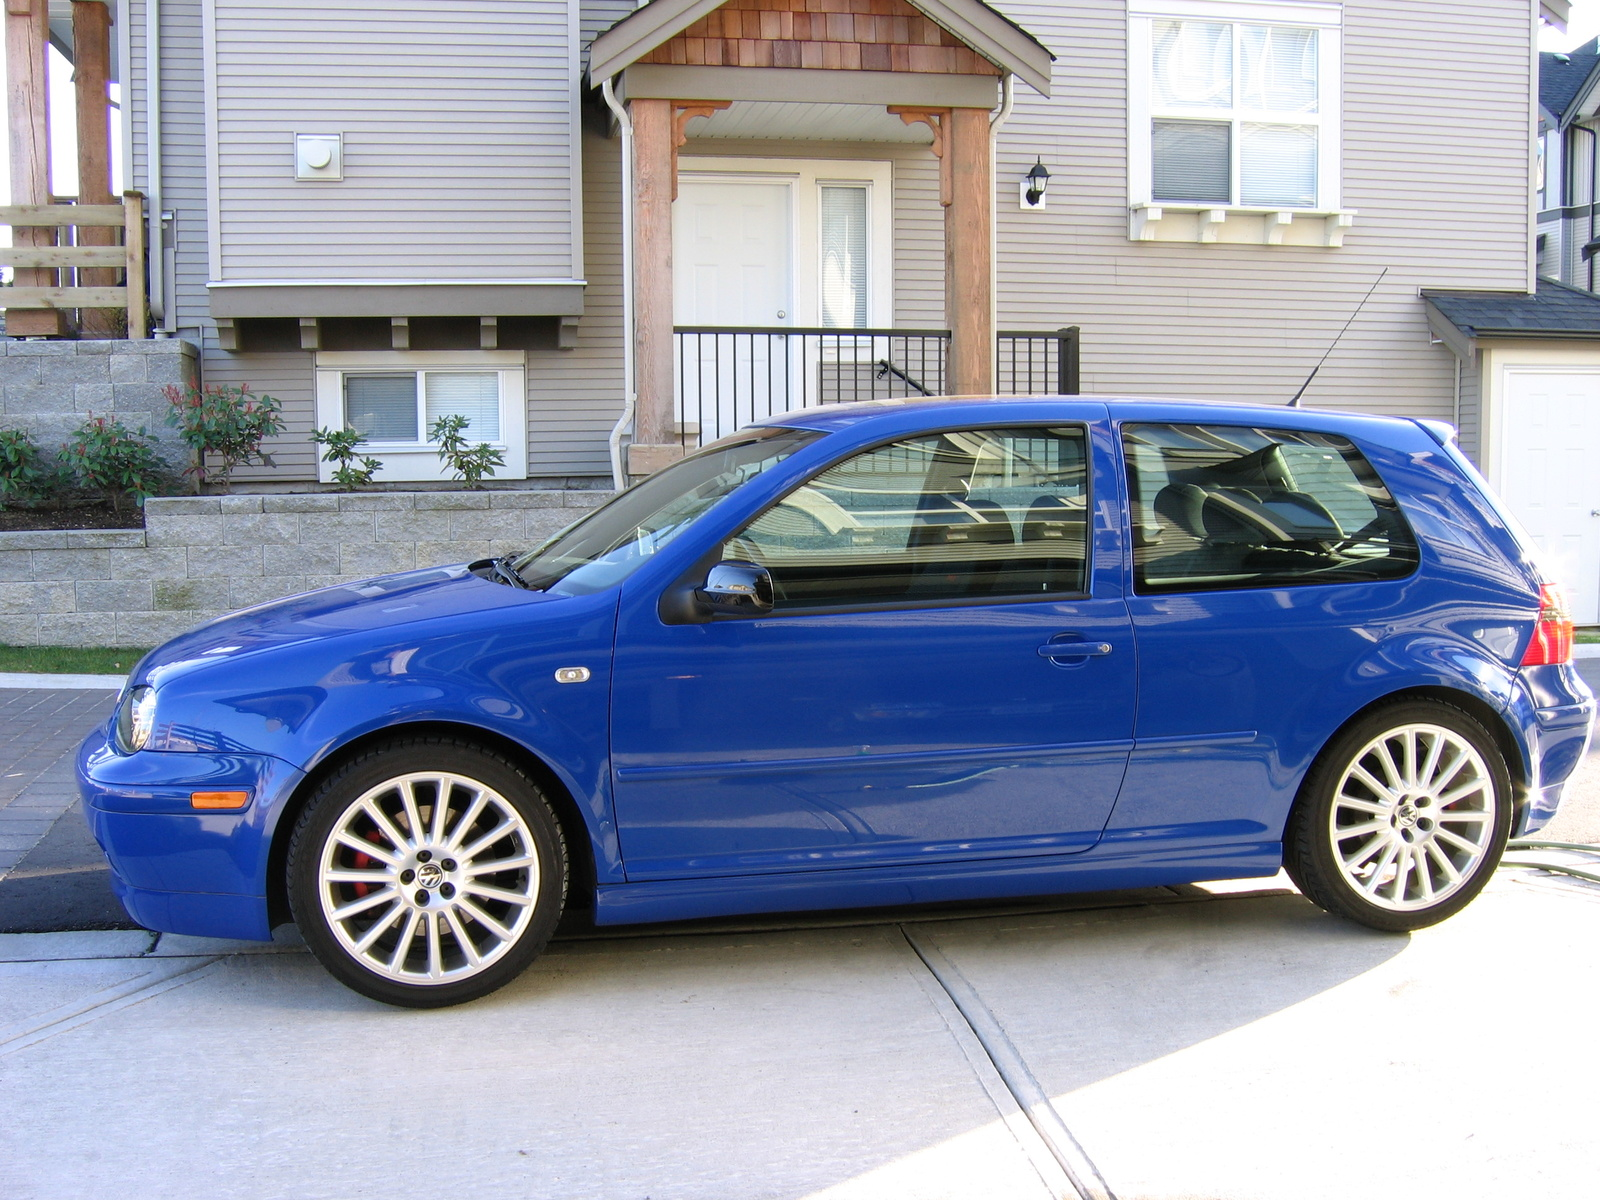 2003 volkswagen gti information and photos zombiedrive. Black Bedroom Furniture Sets. Home Design Ideas